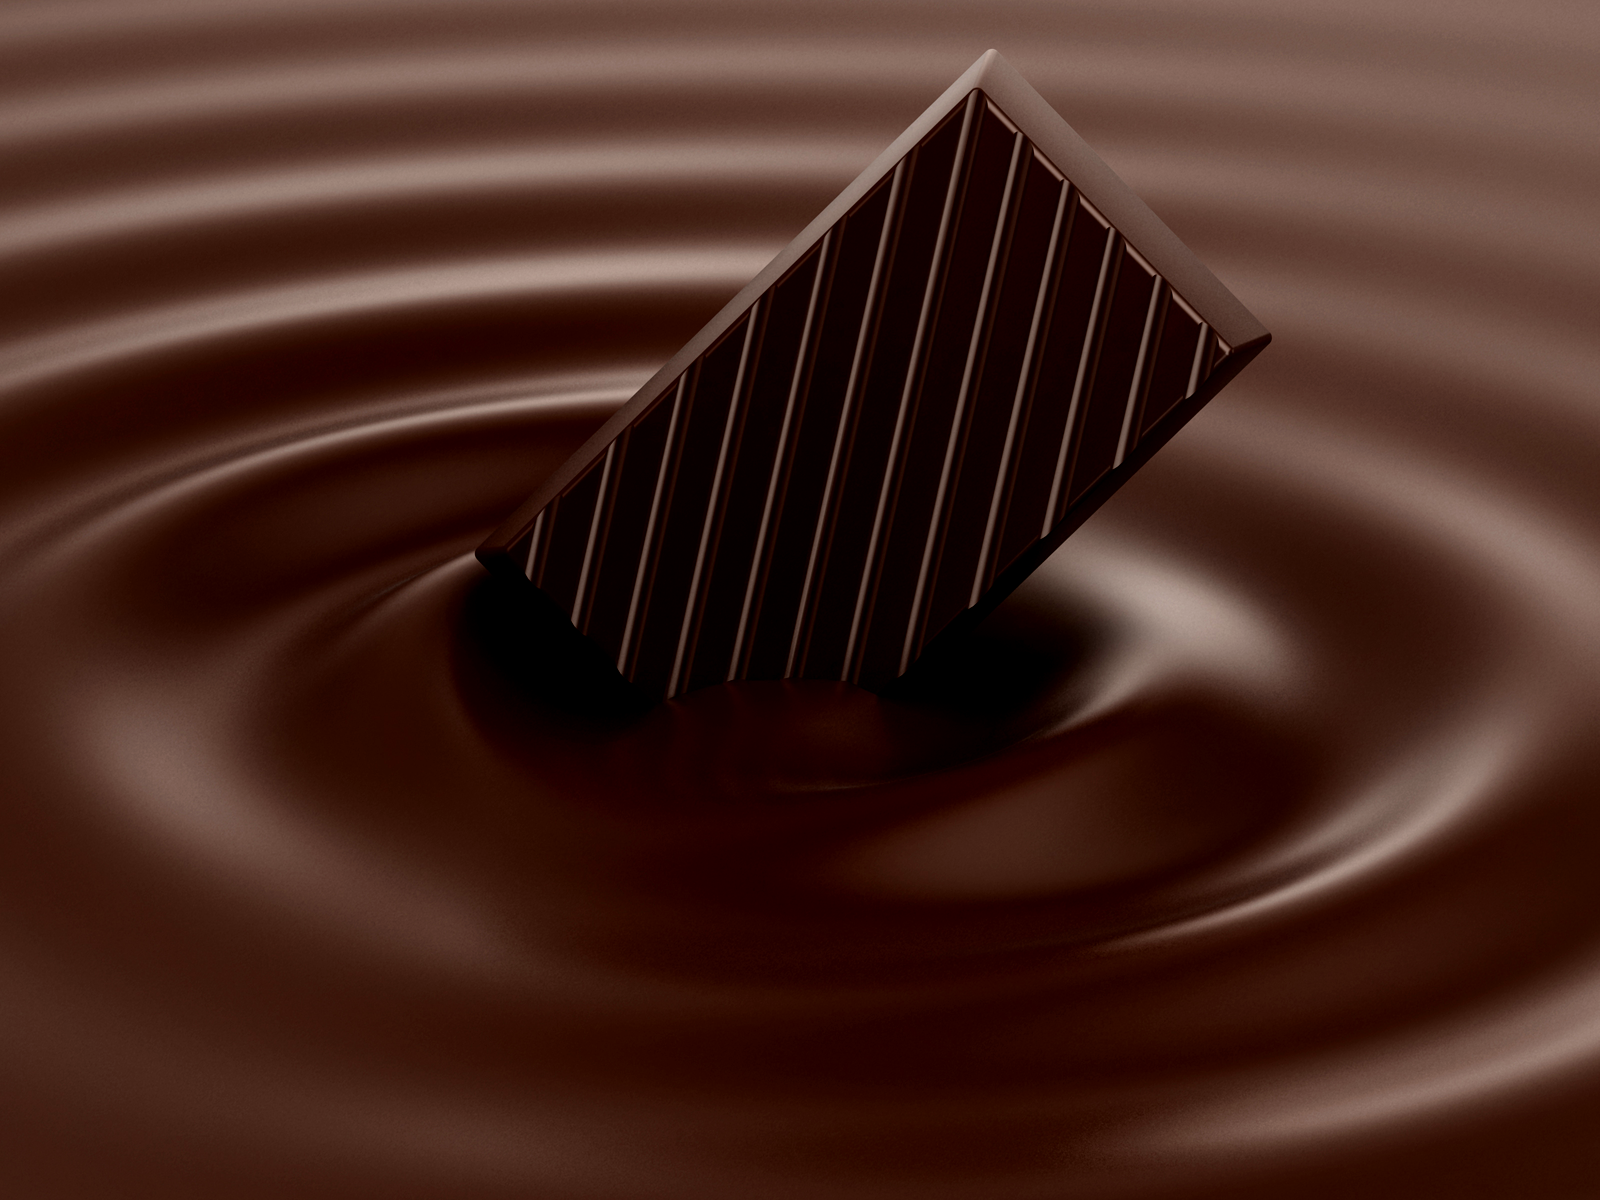 Another Chocolate wallpaper Todays Republican Mendacity 1600x1200